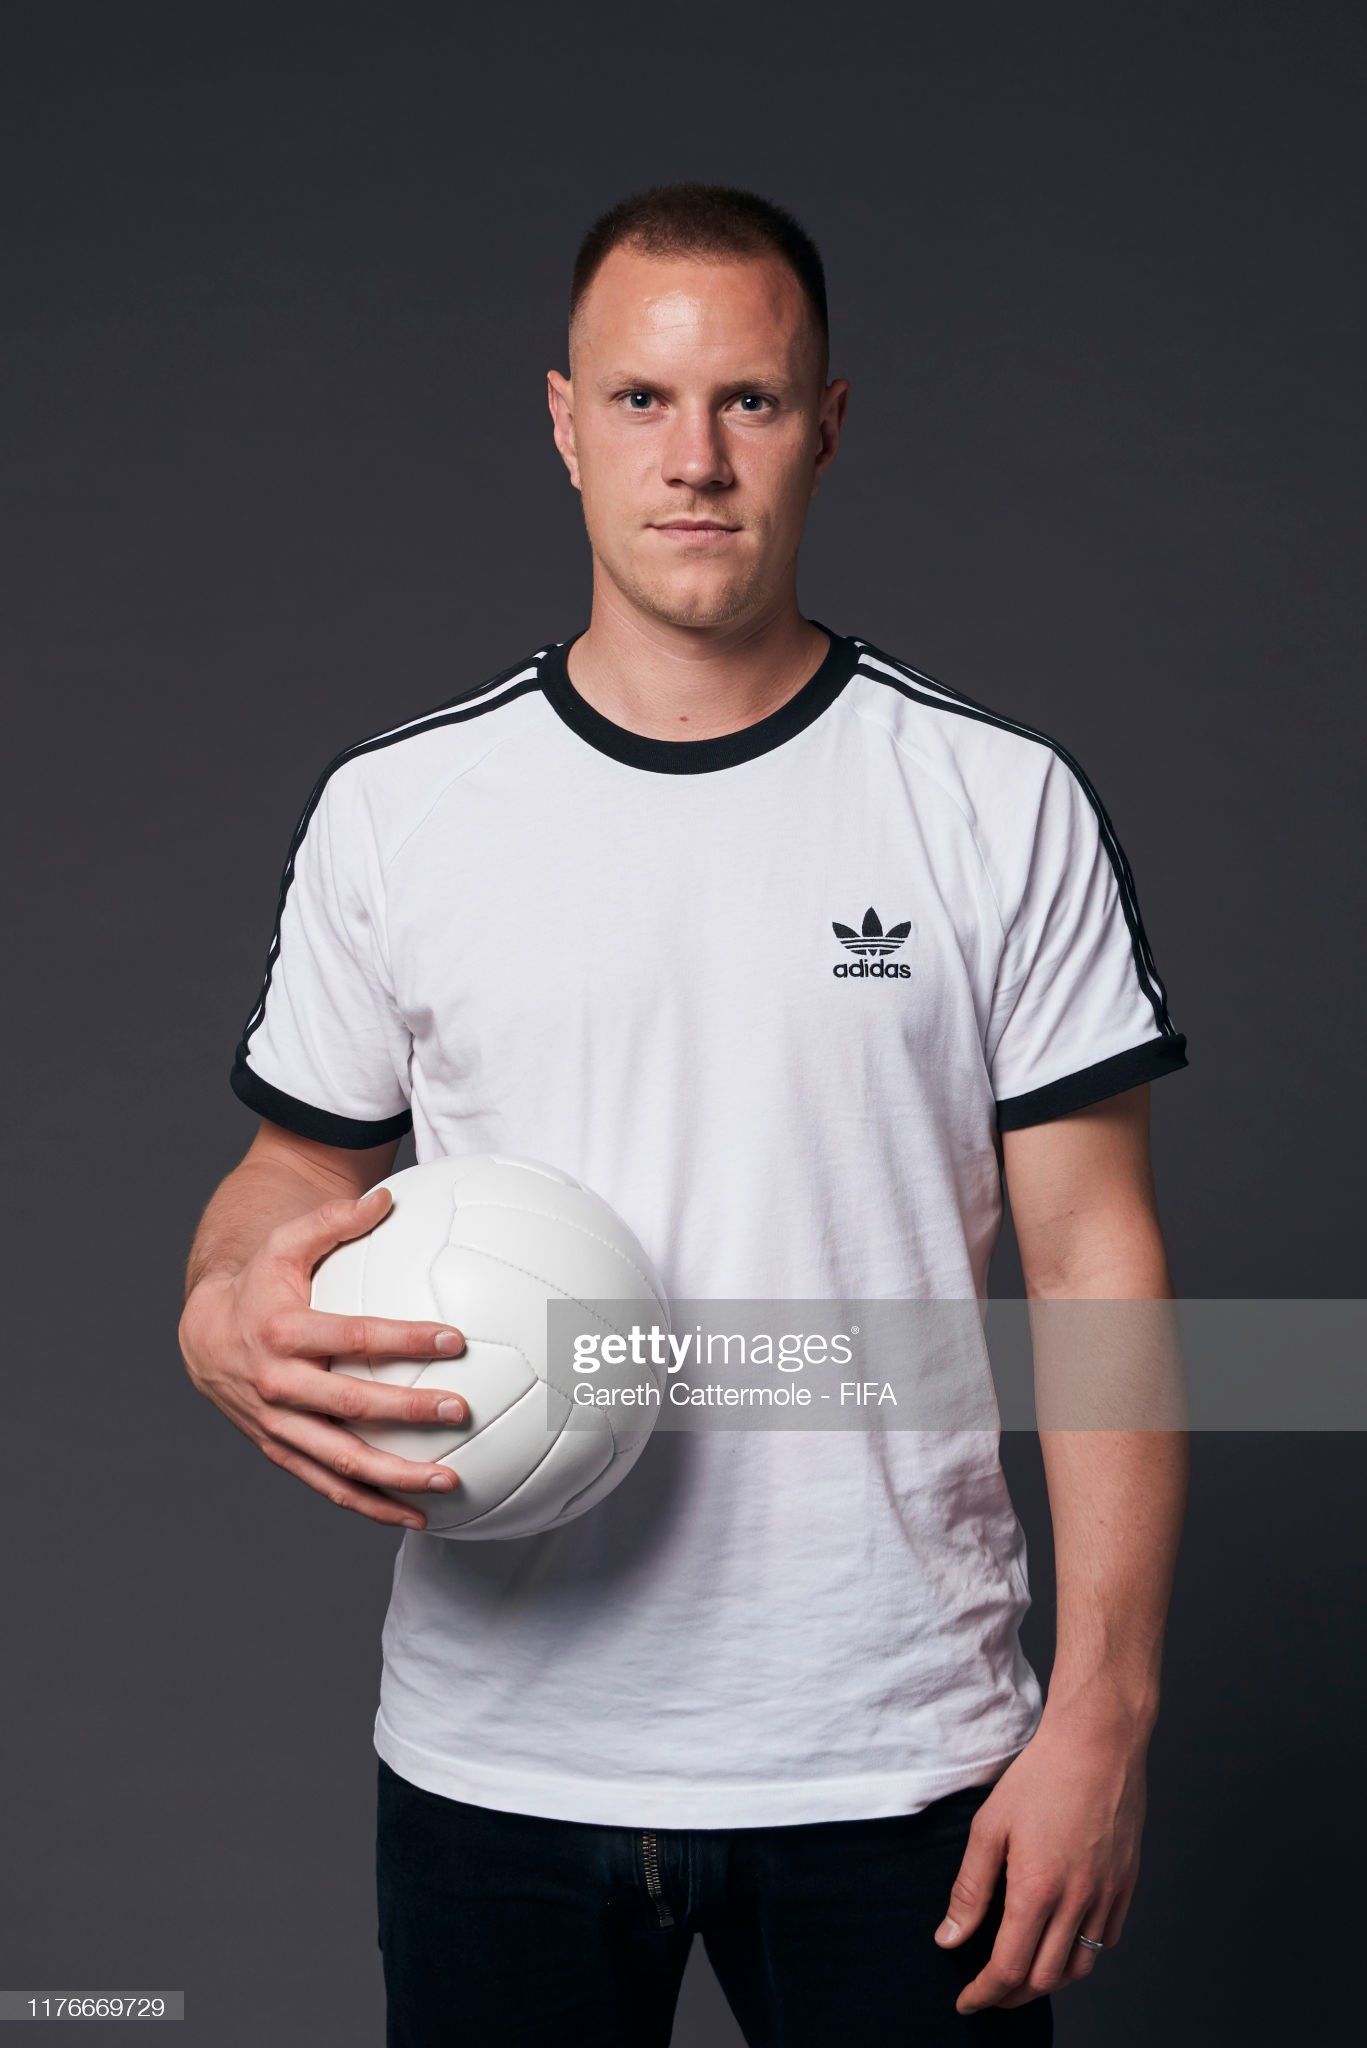 The Best FIFA Football Awards 2019 The-best-fifa-mens-goalkeeper-award-finalist-marc-andre-ter-stegen-of-picture-id1176669729?s=2048x2048